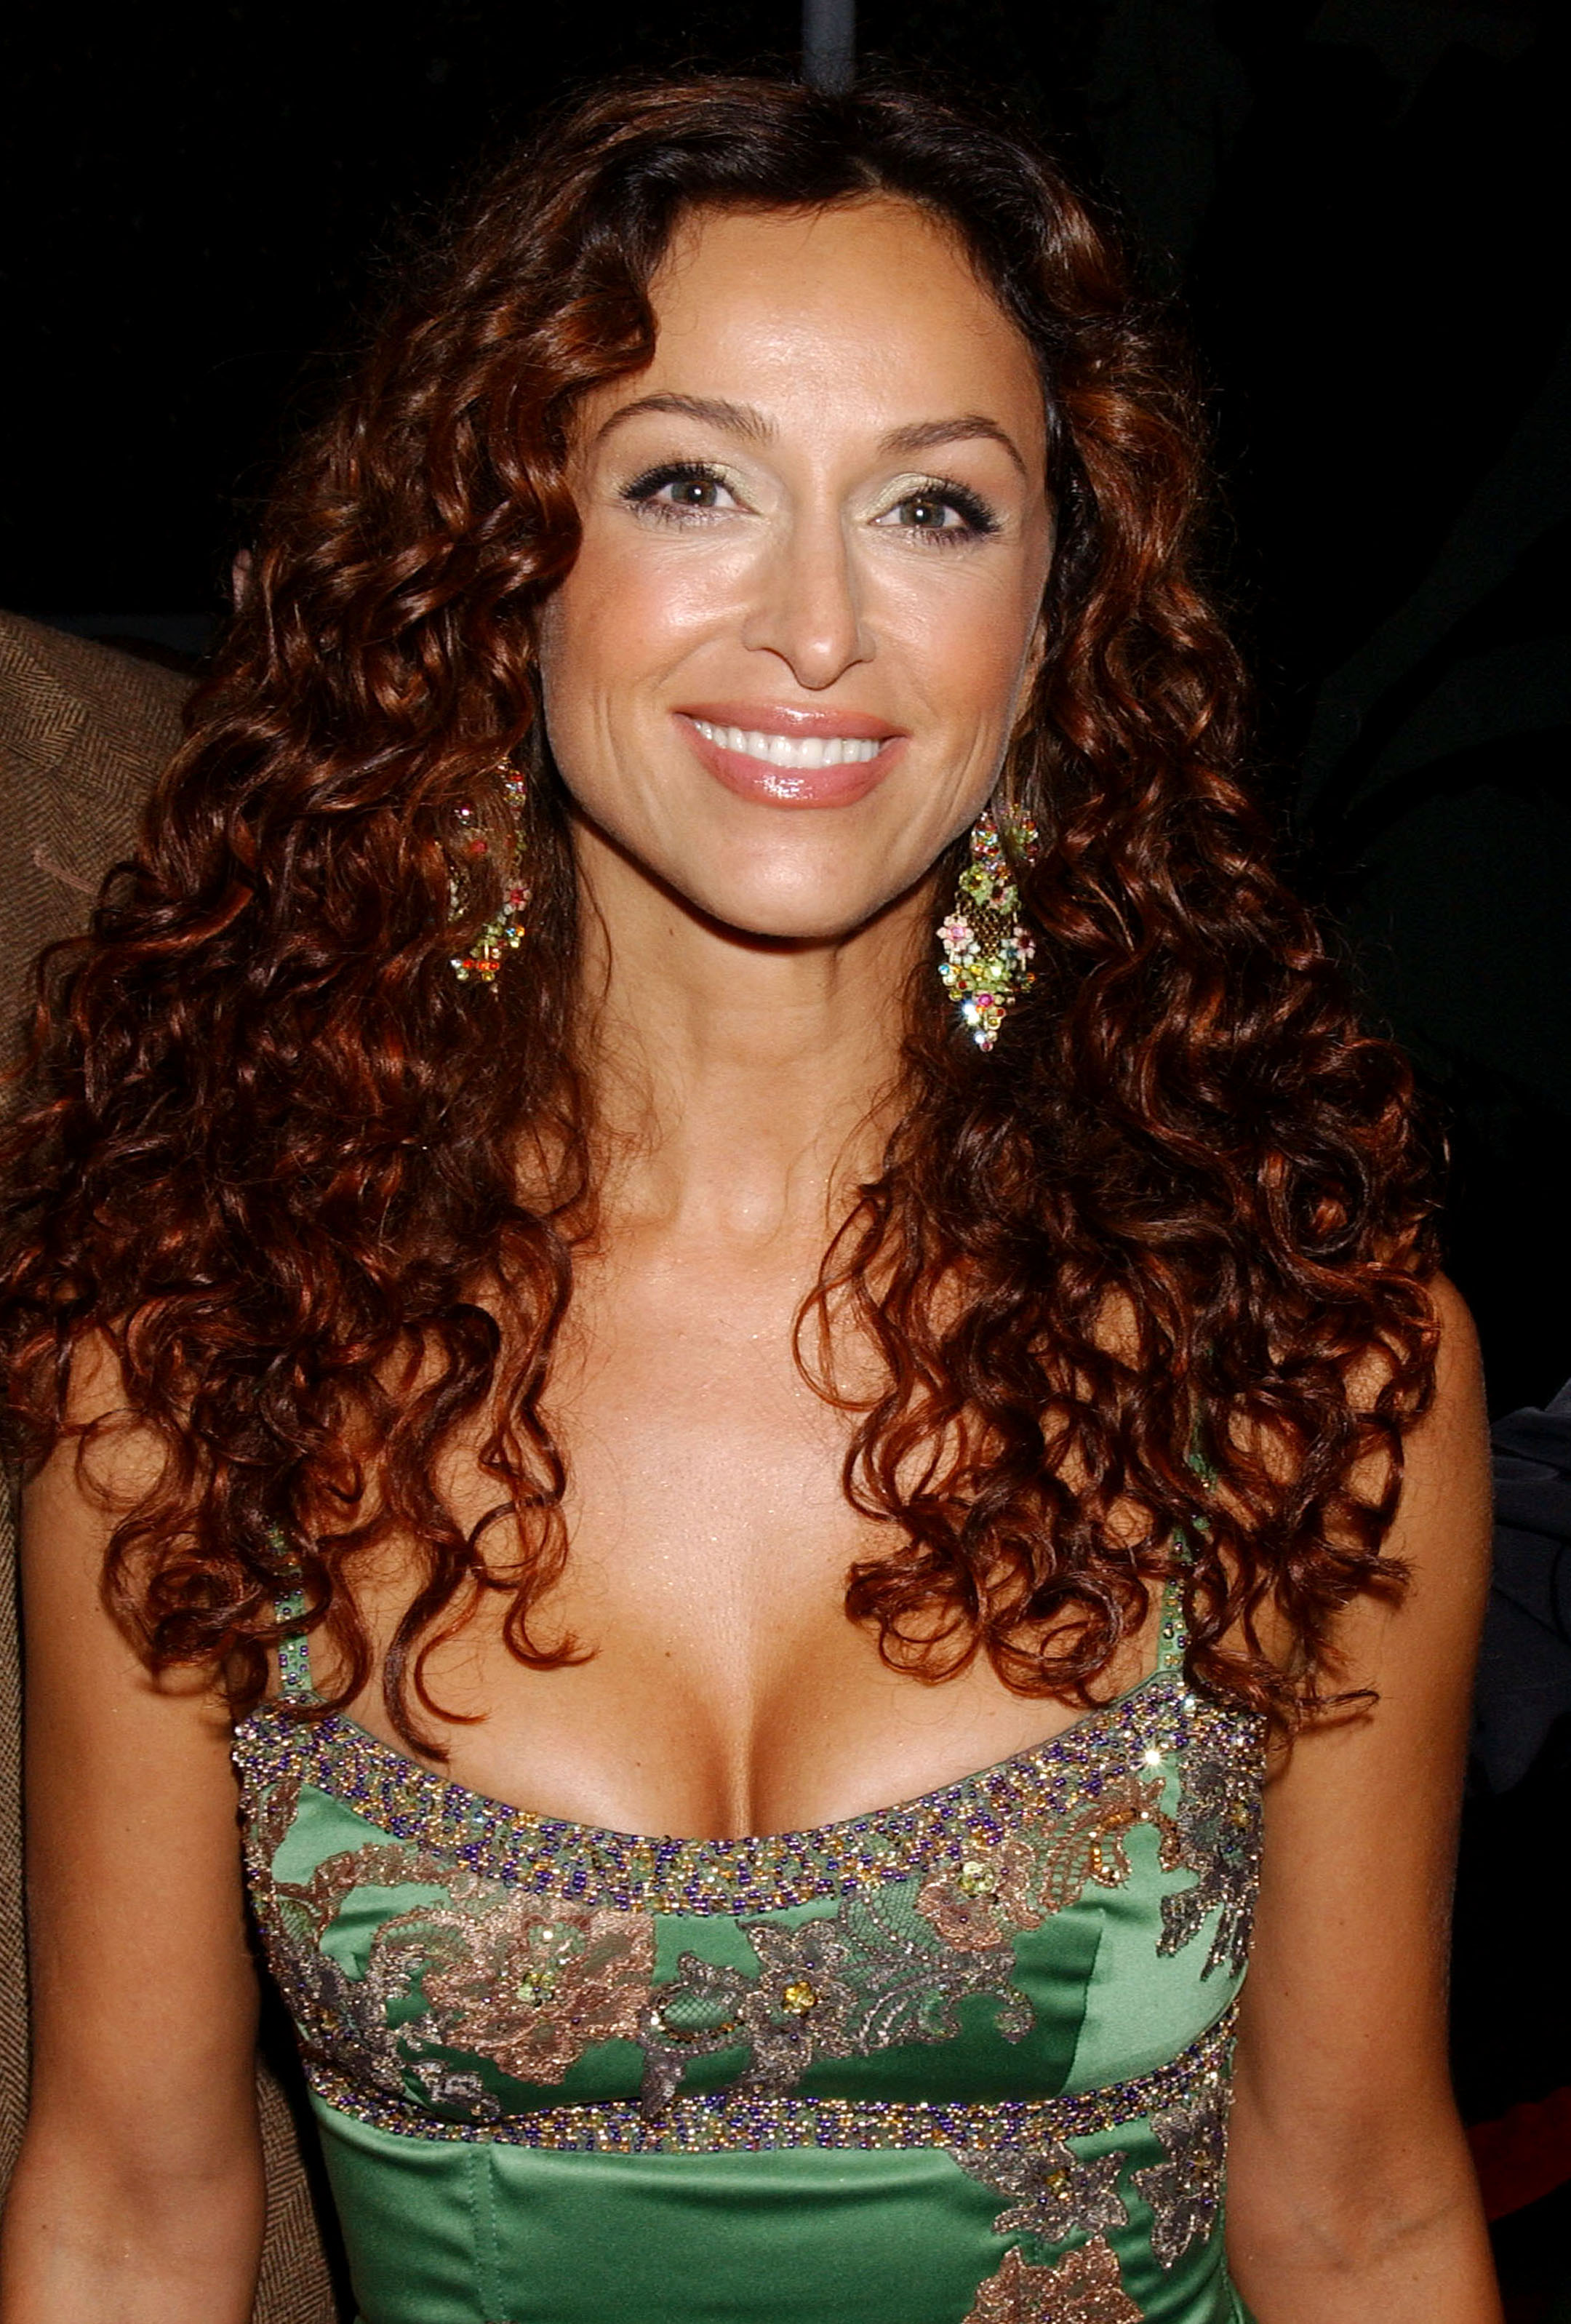 wallpapers Hollywood Photos Sofia Milos   Gallery Photo Colection 2160x3195